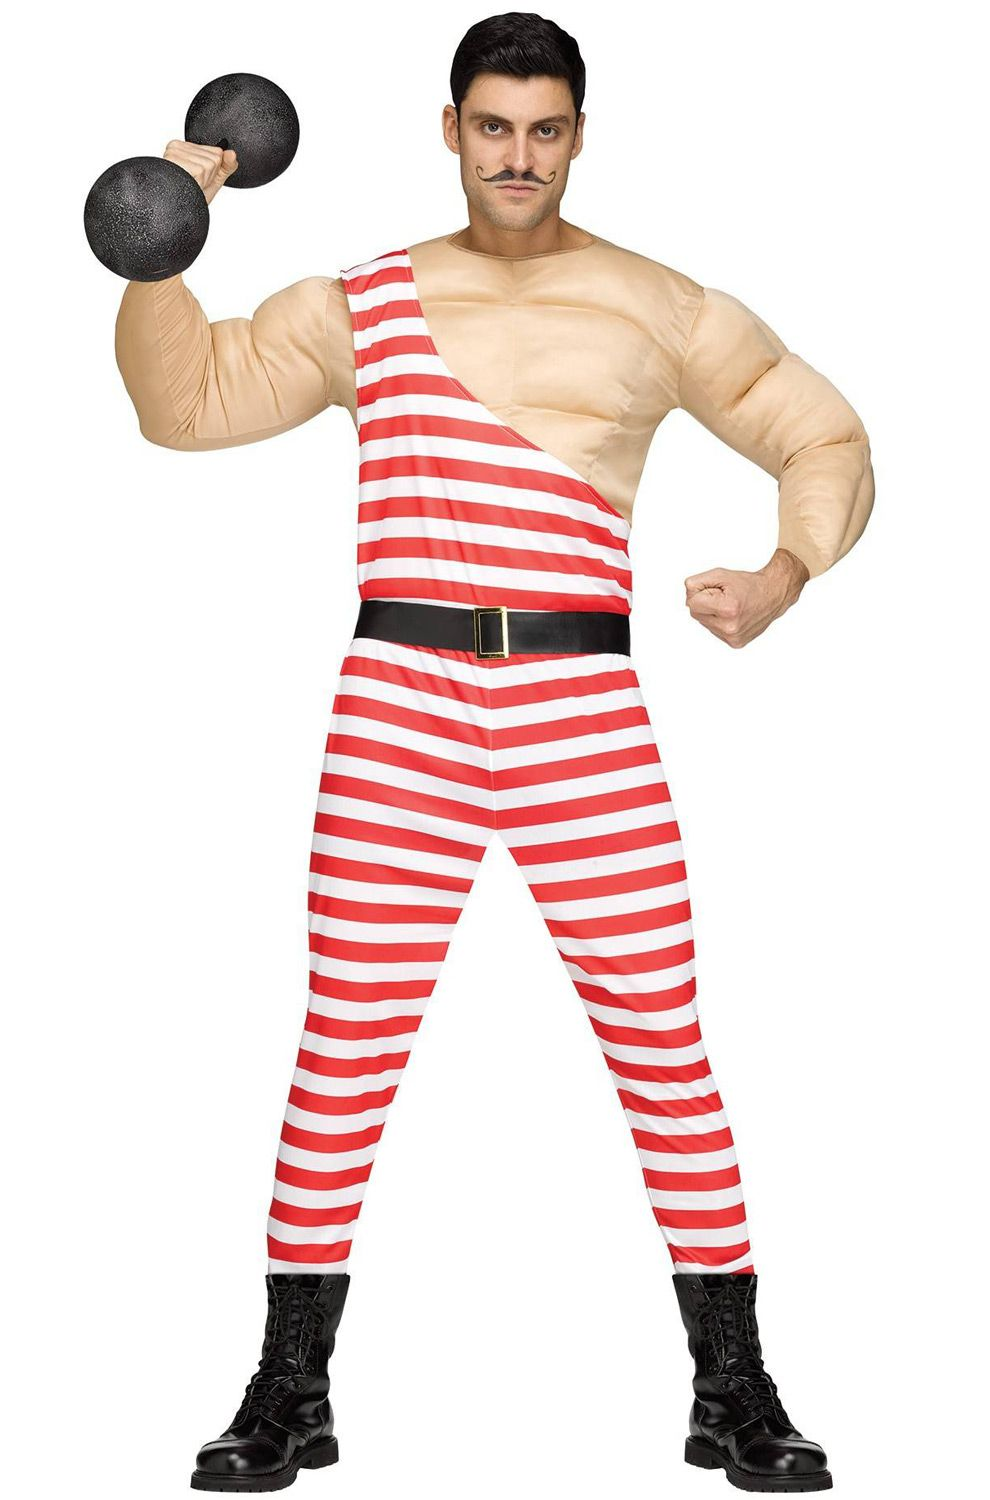 Carny Muscle Man Adult Costume in 2020 Strong man